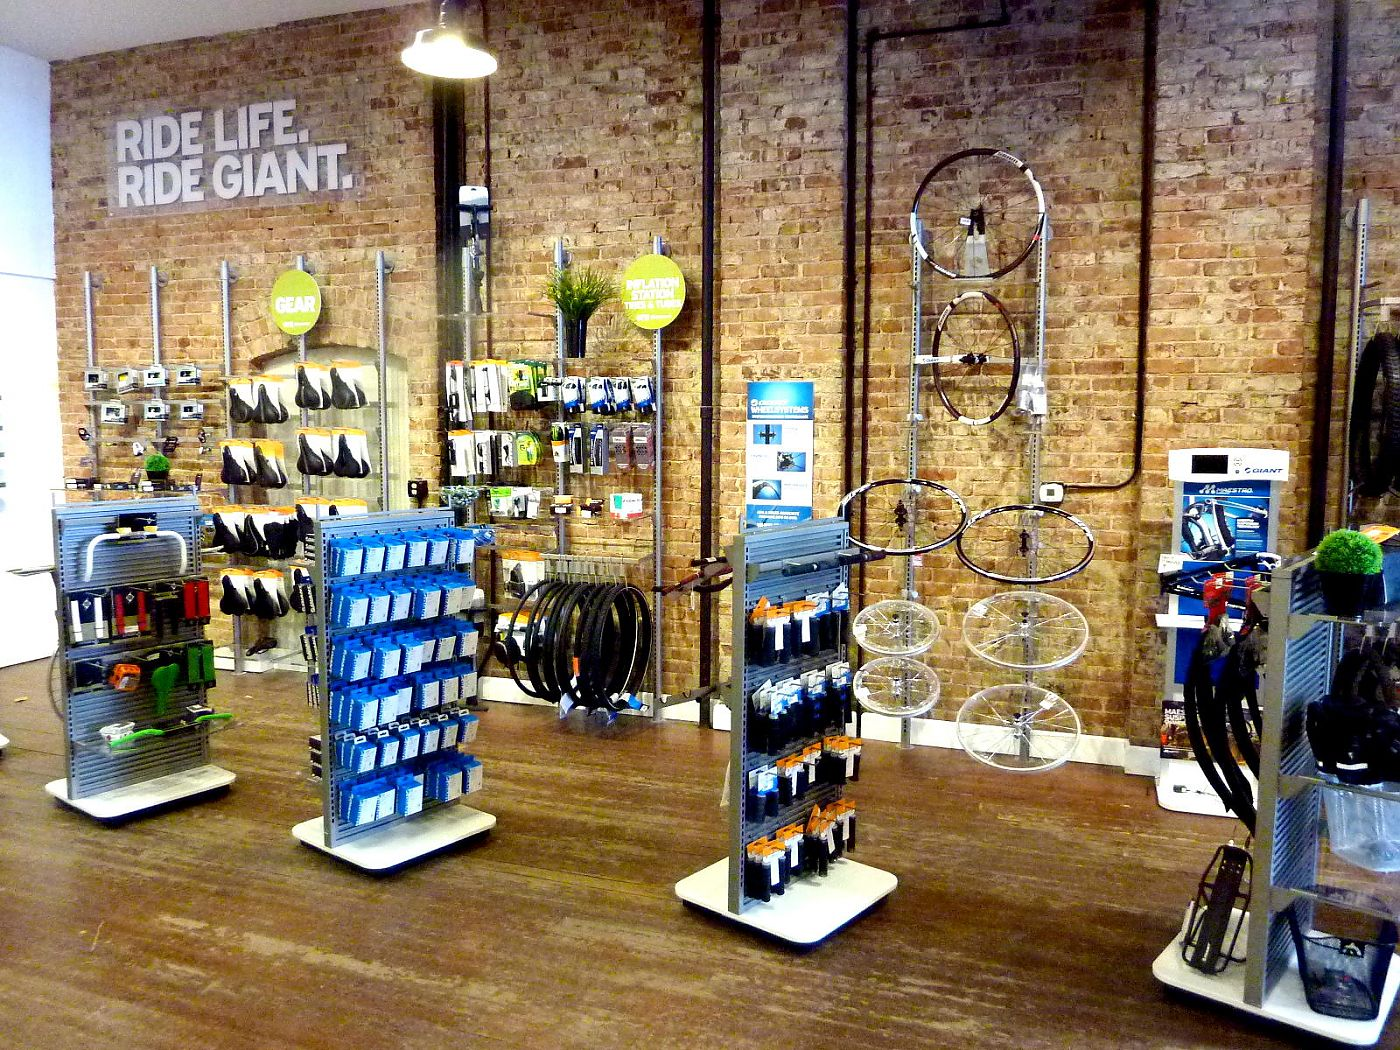 A Bike Store The Bike Hub Opens Second Location As Giant Partner Store